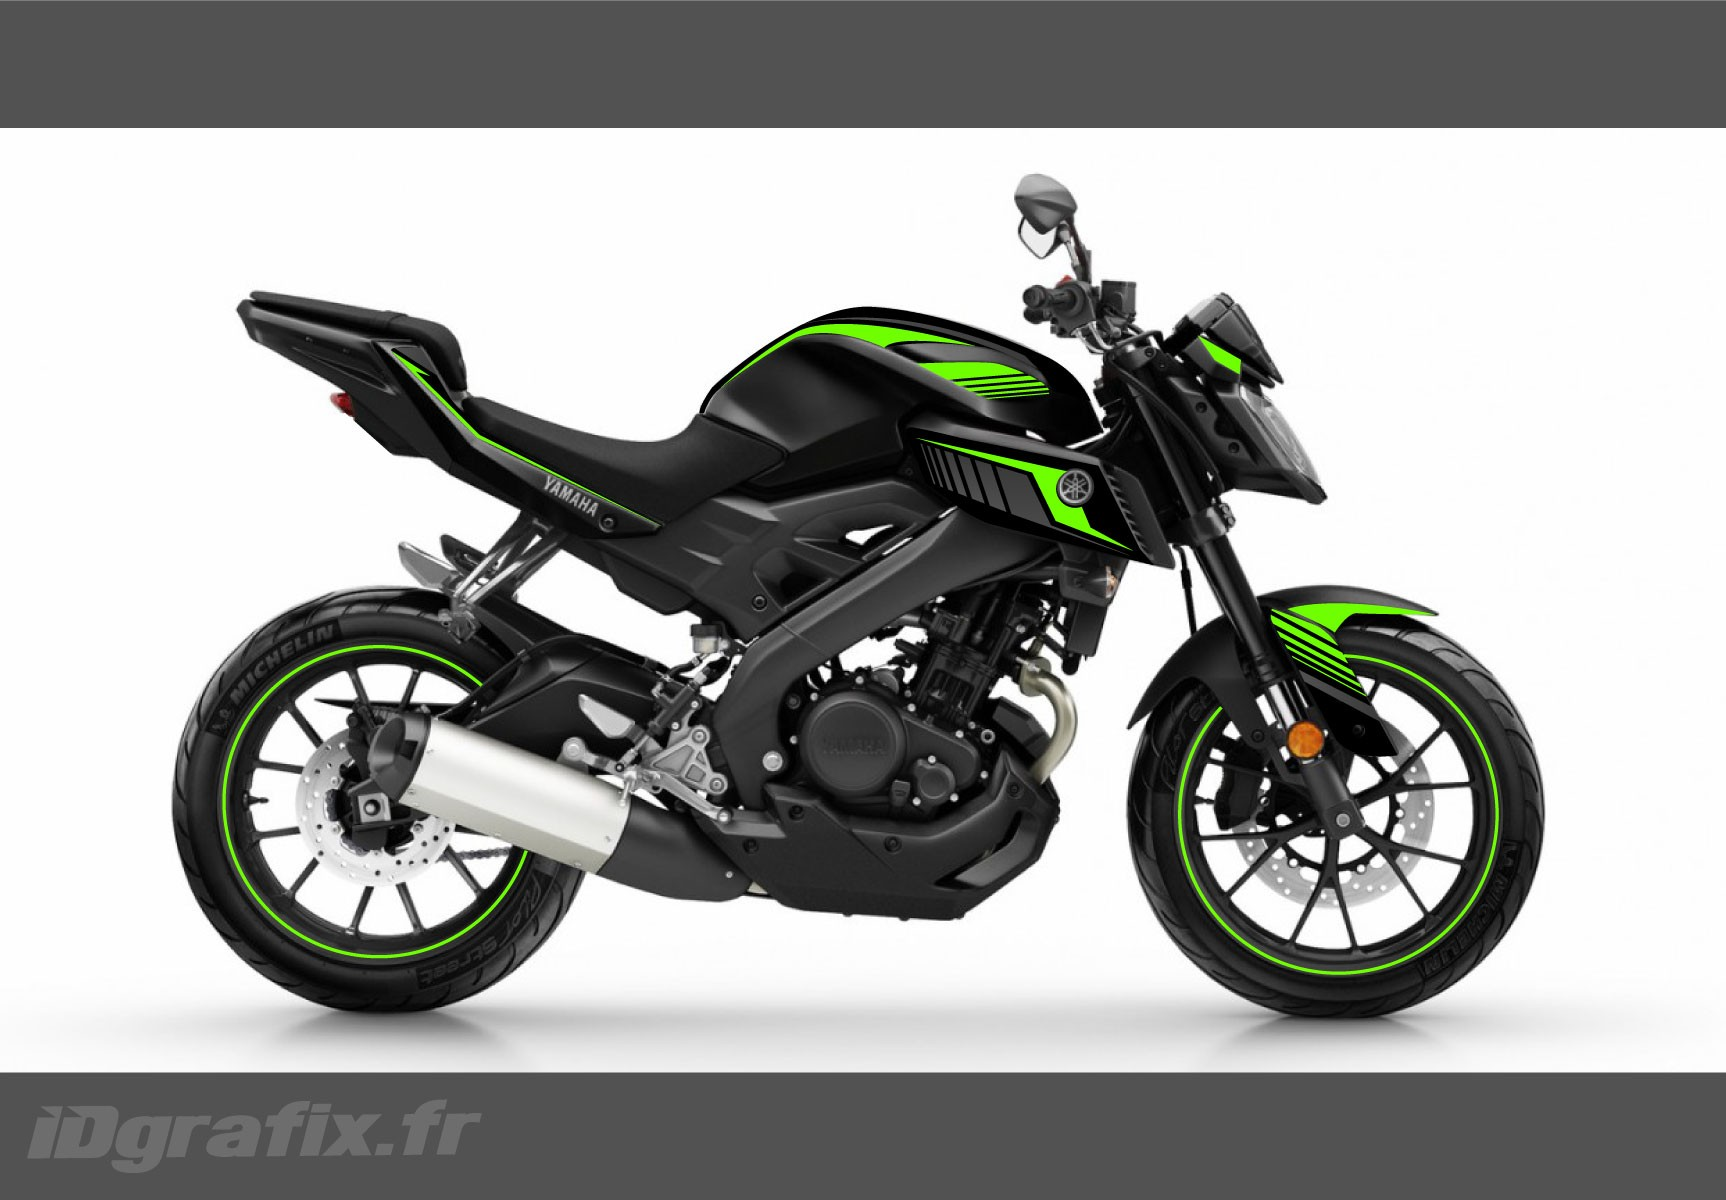 kit dekor racing neon gr n idgrafix yamaha mt 125 idgrafix. Black Bedroom Furniture Sets. Home Design Ideas